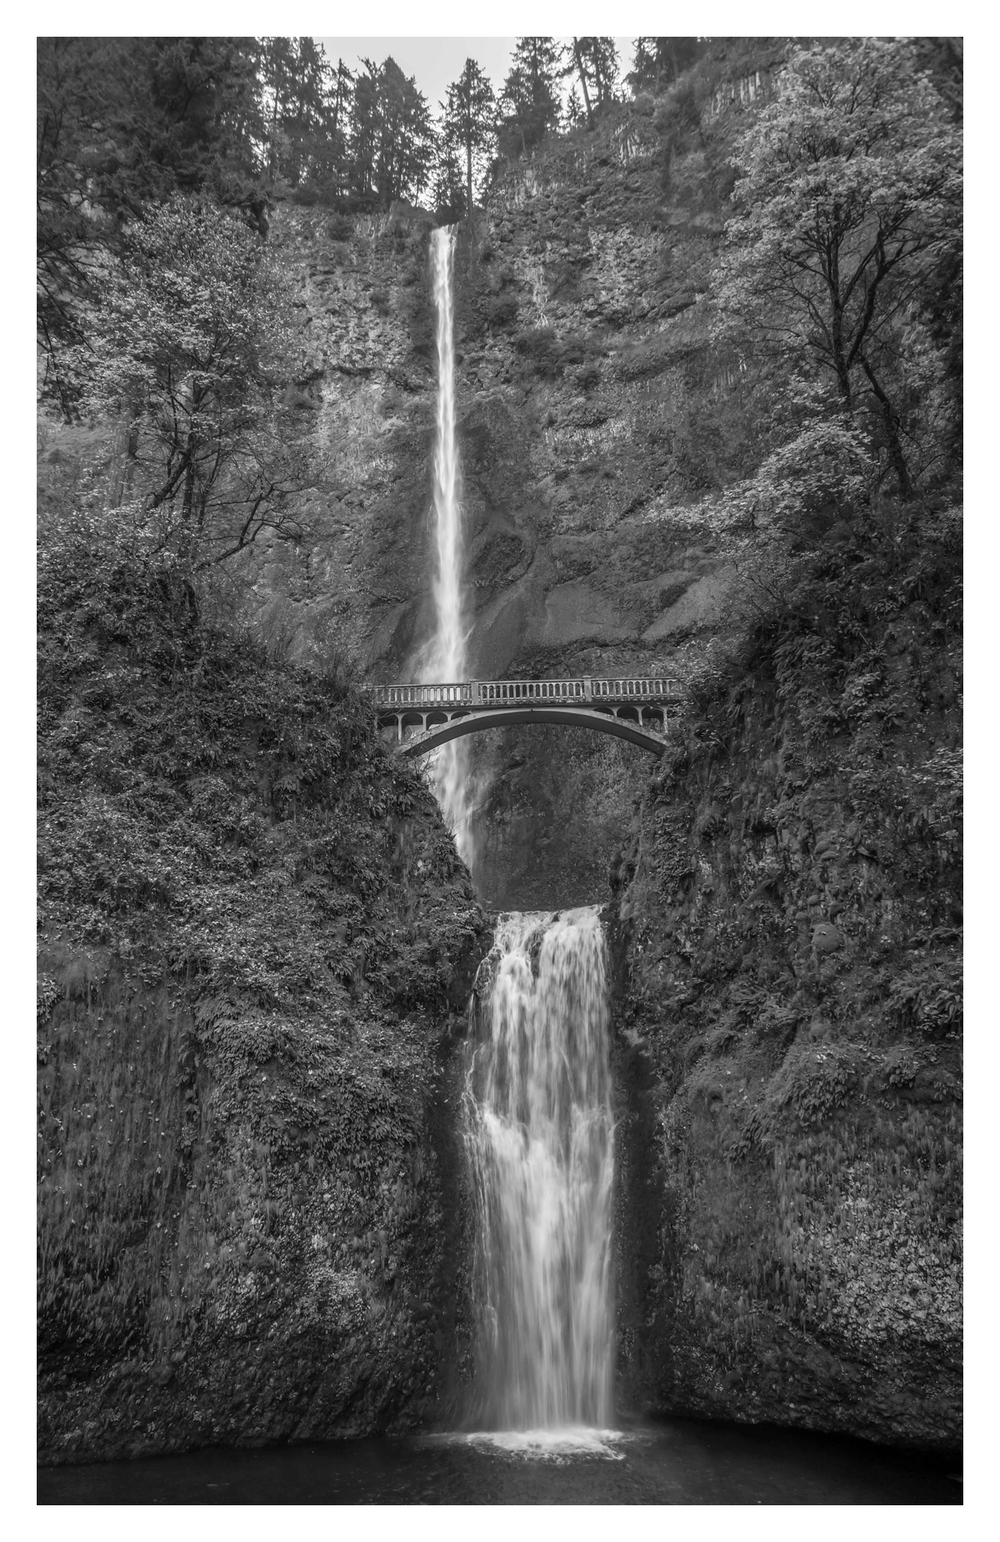 2013-10-26 Oregon Multnomah Falls 01-7